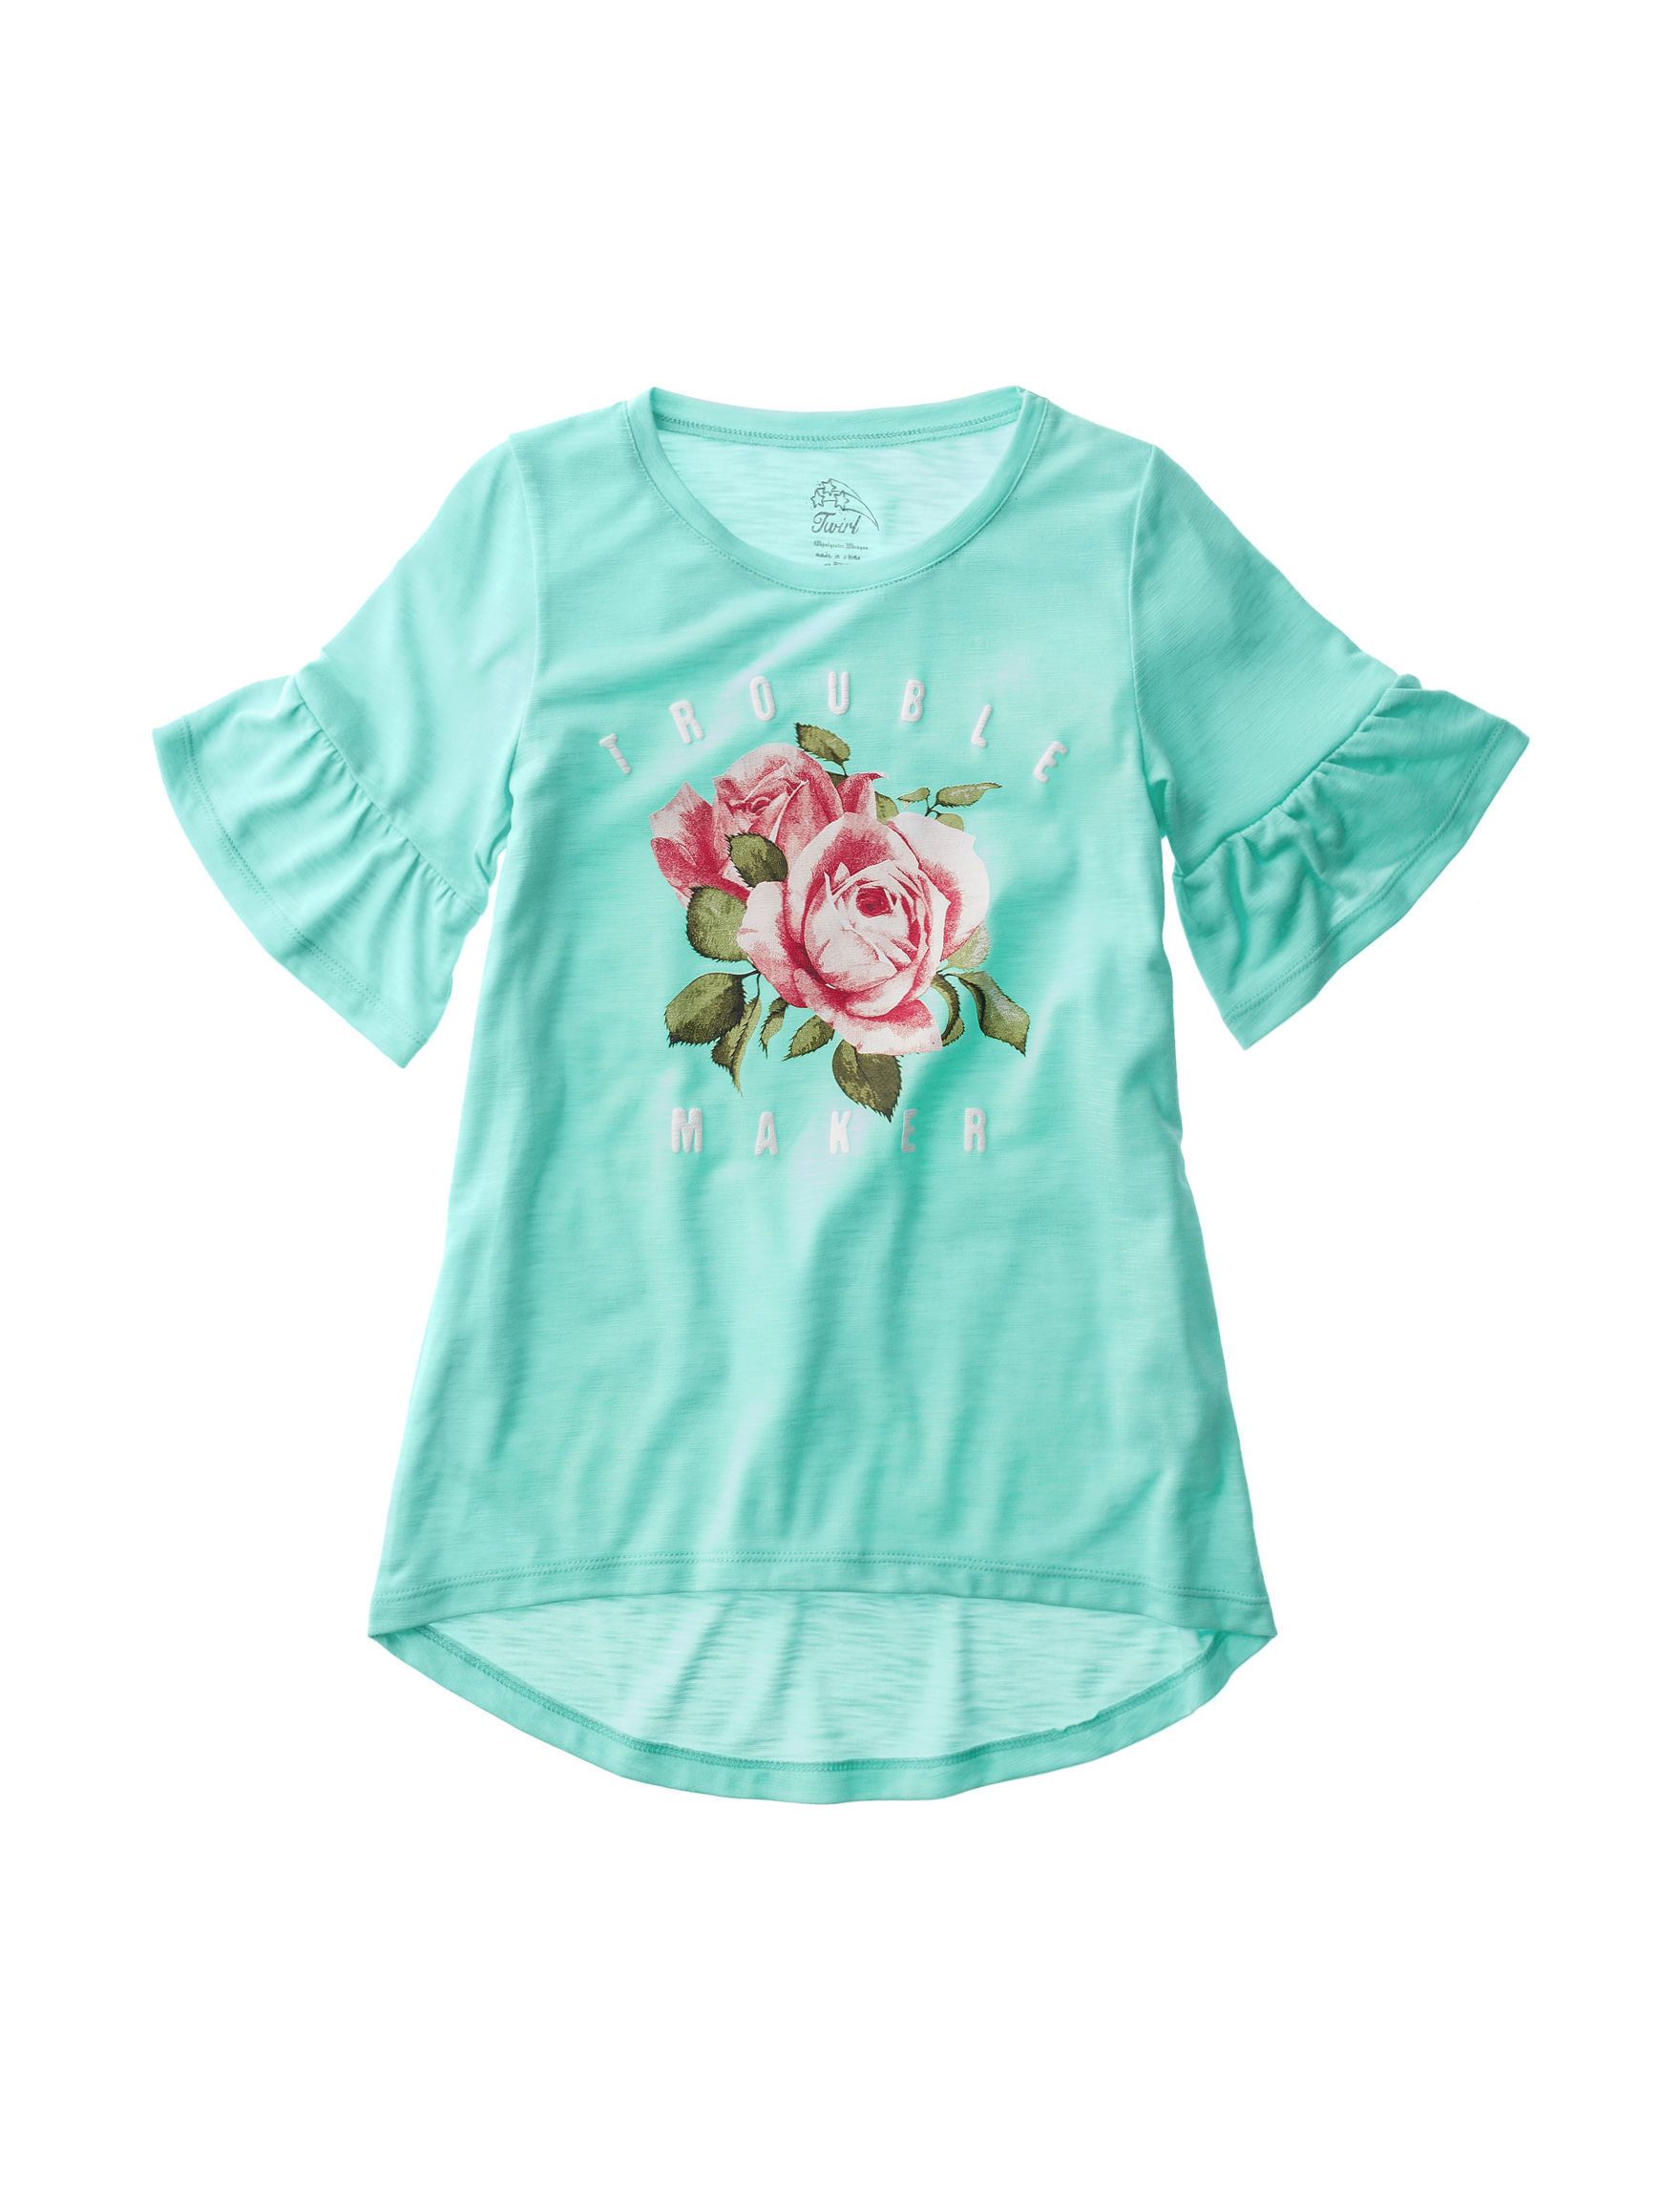 Twirl Mint Tees & Tanks